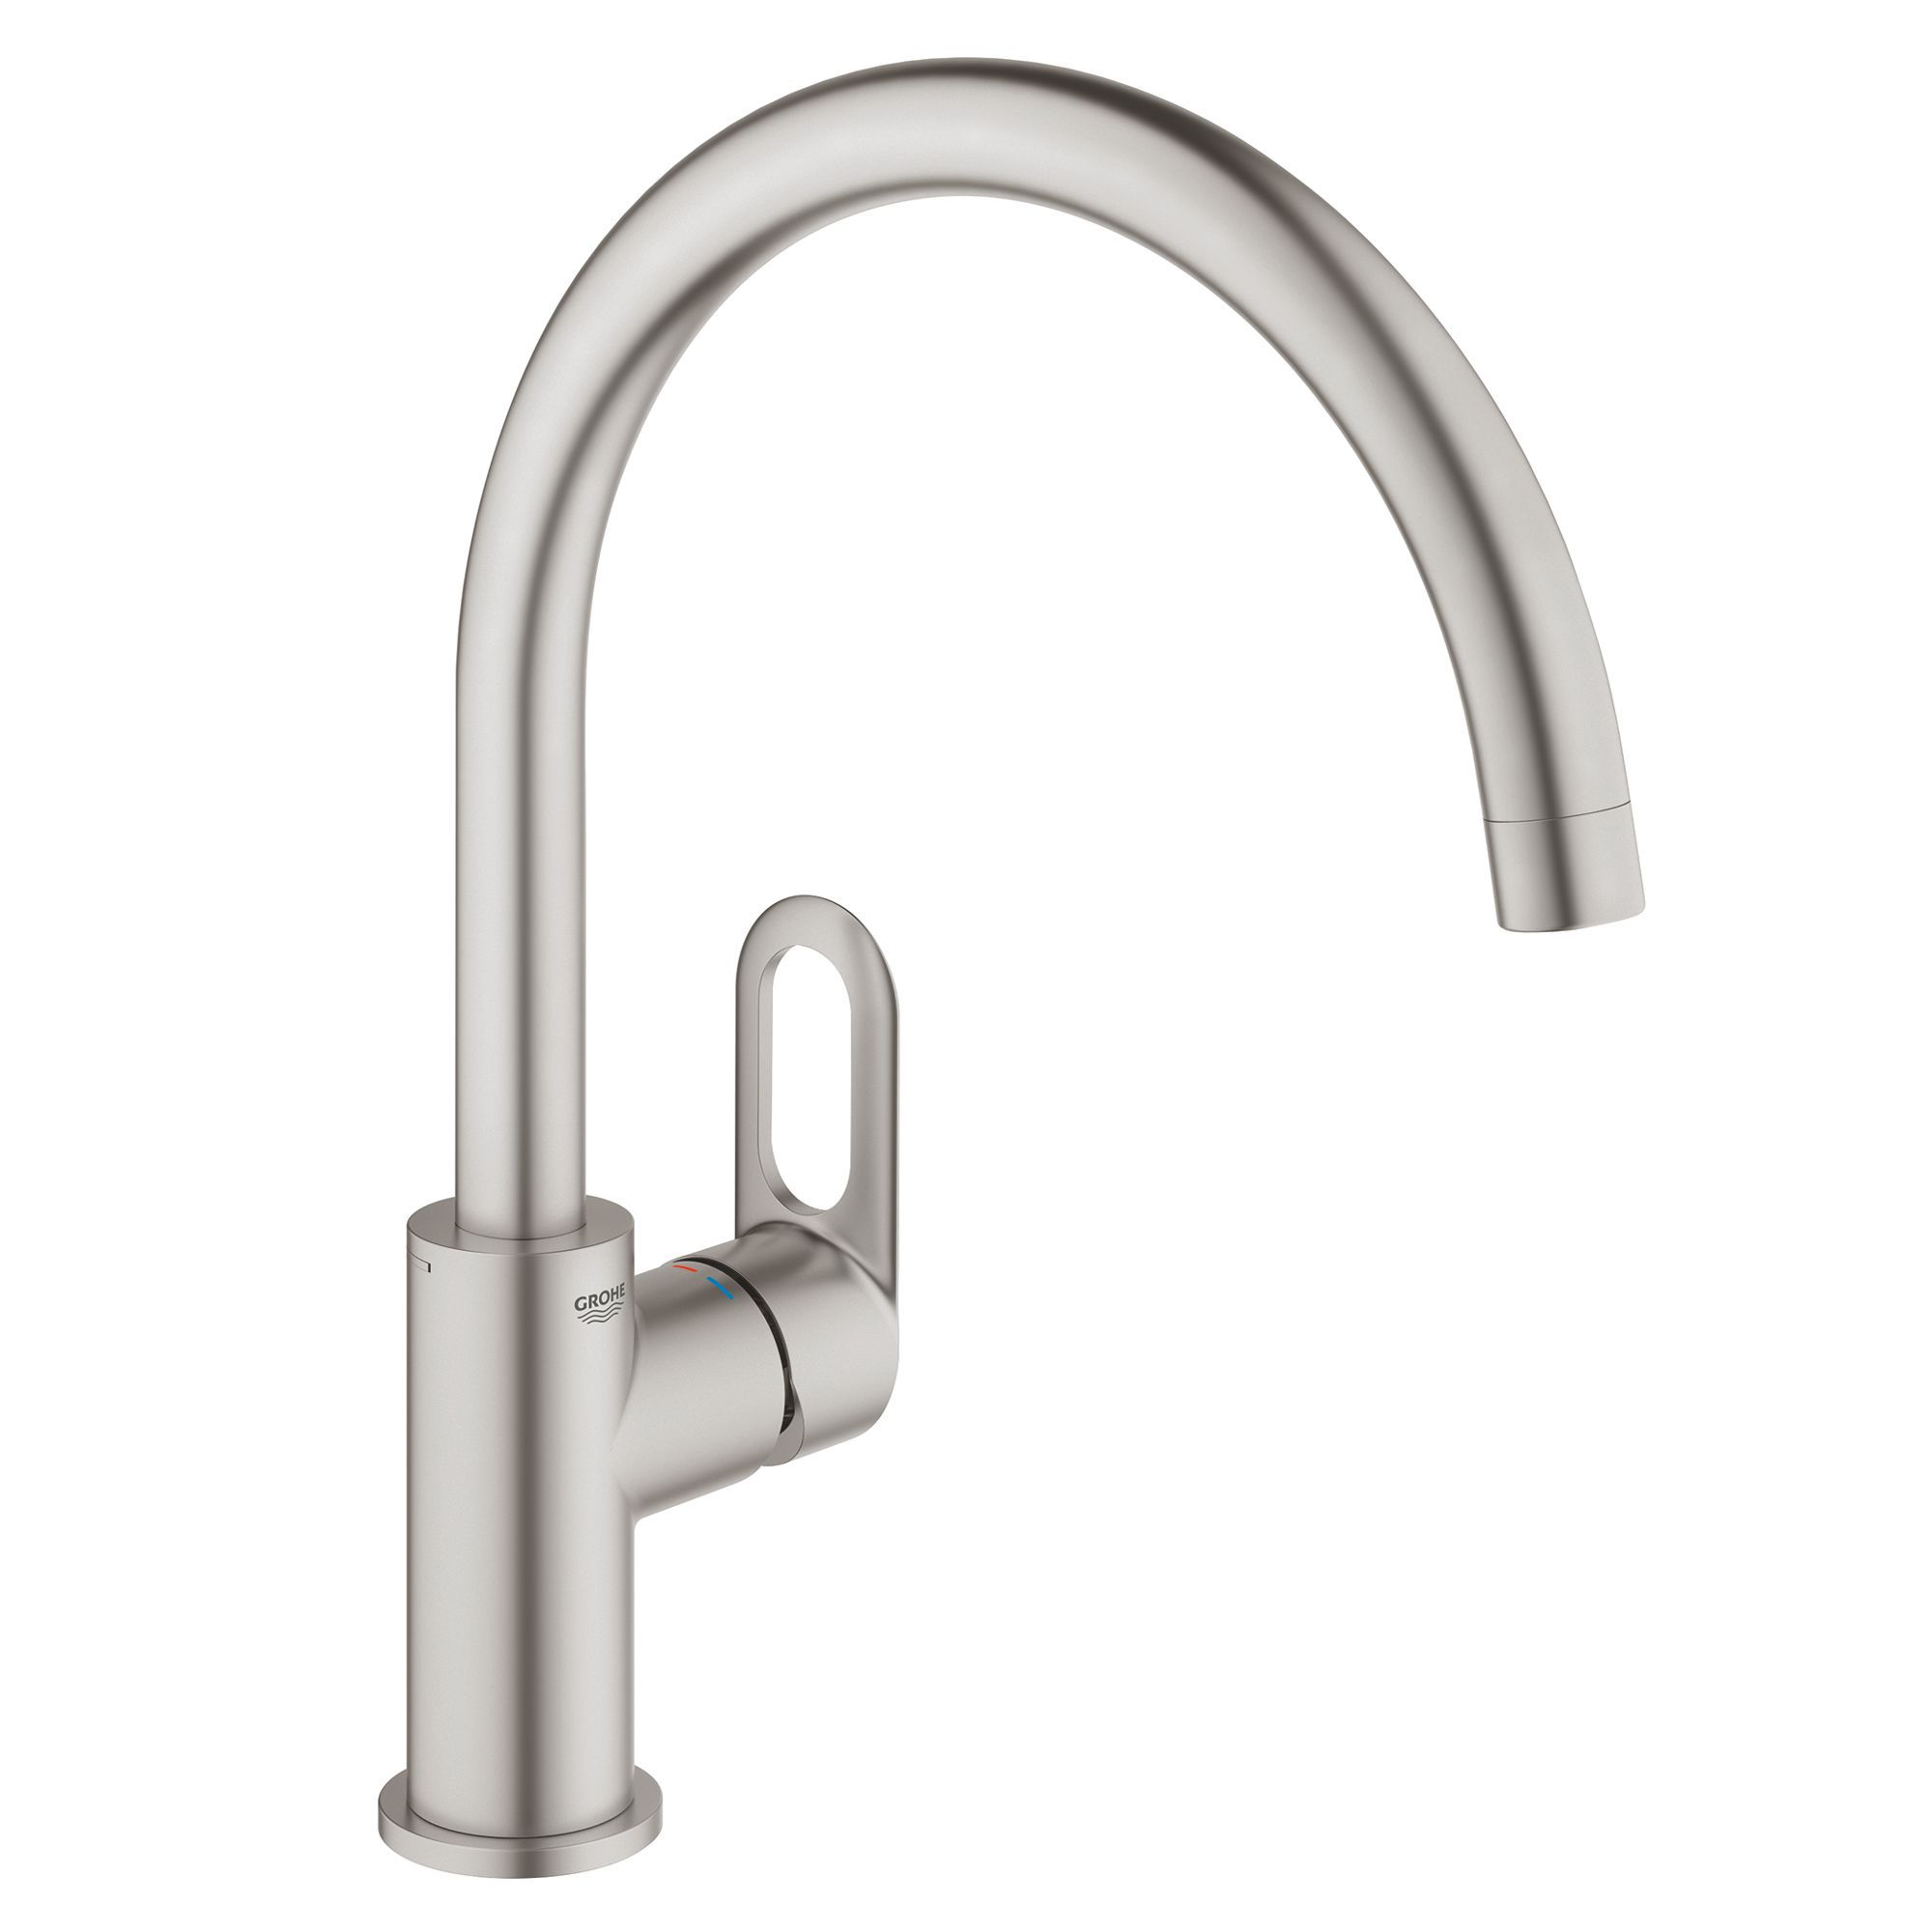 grohe start loop brushed nickel kitchen monobloc tap departments diy at b q. Black Bedroom Furniture Sets. Home Design Ideas